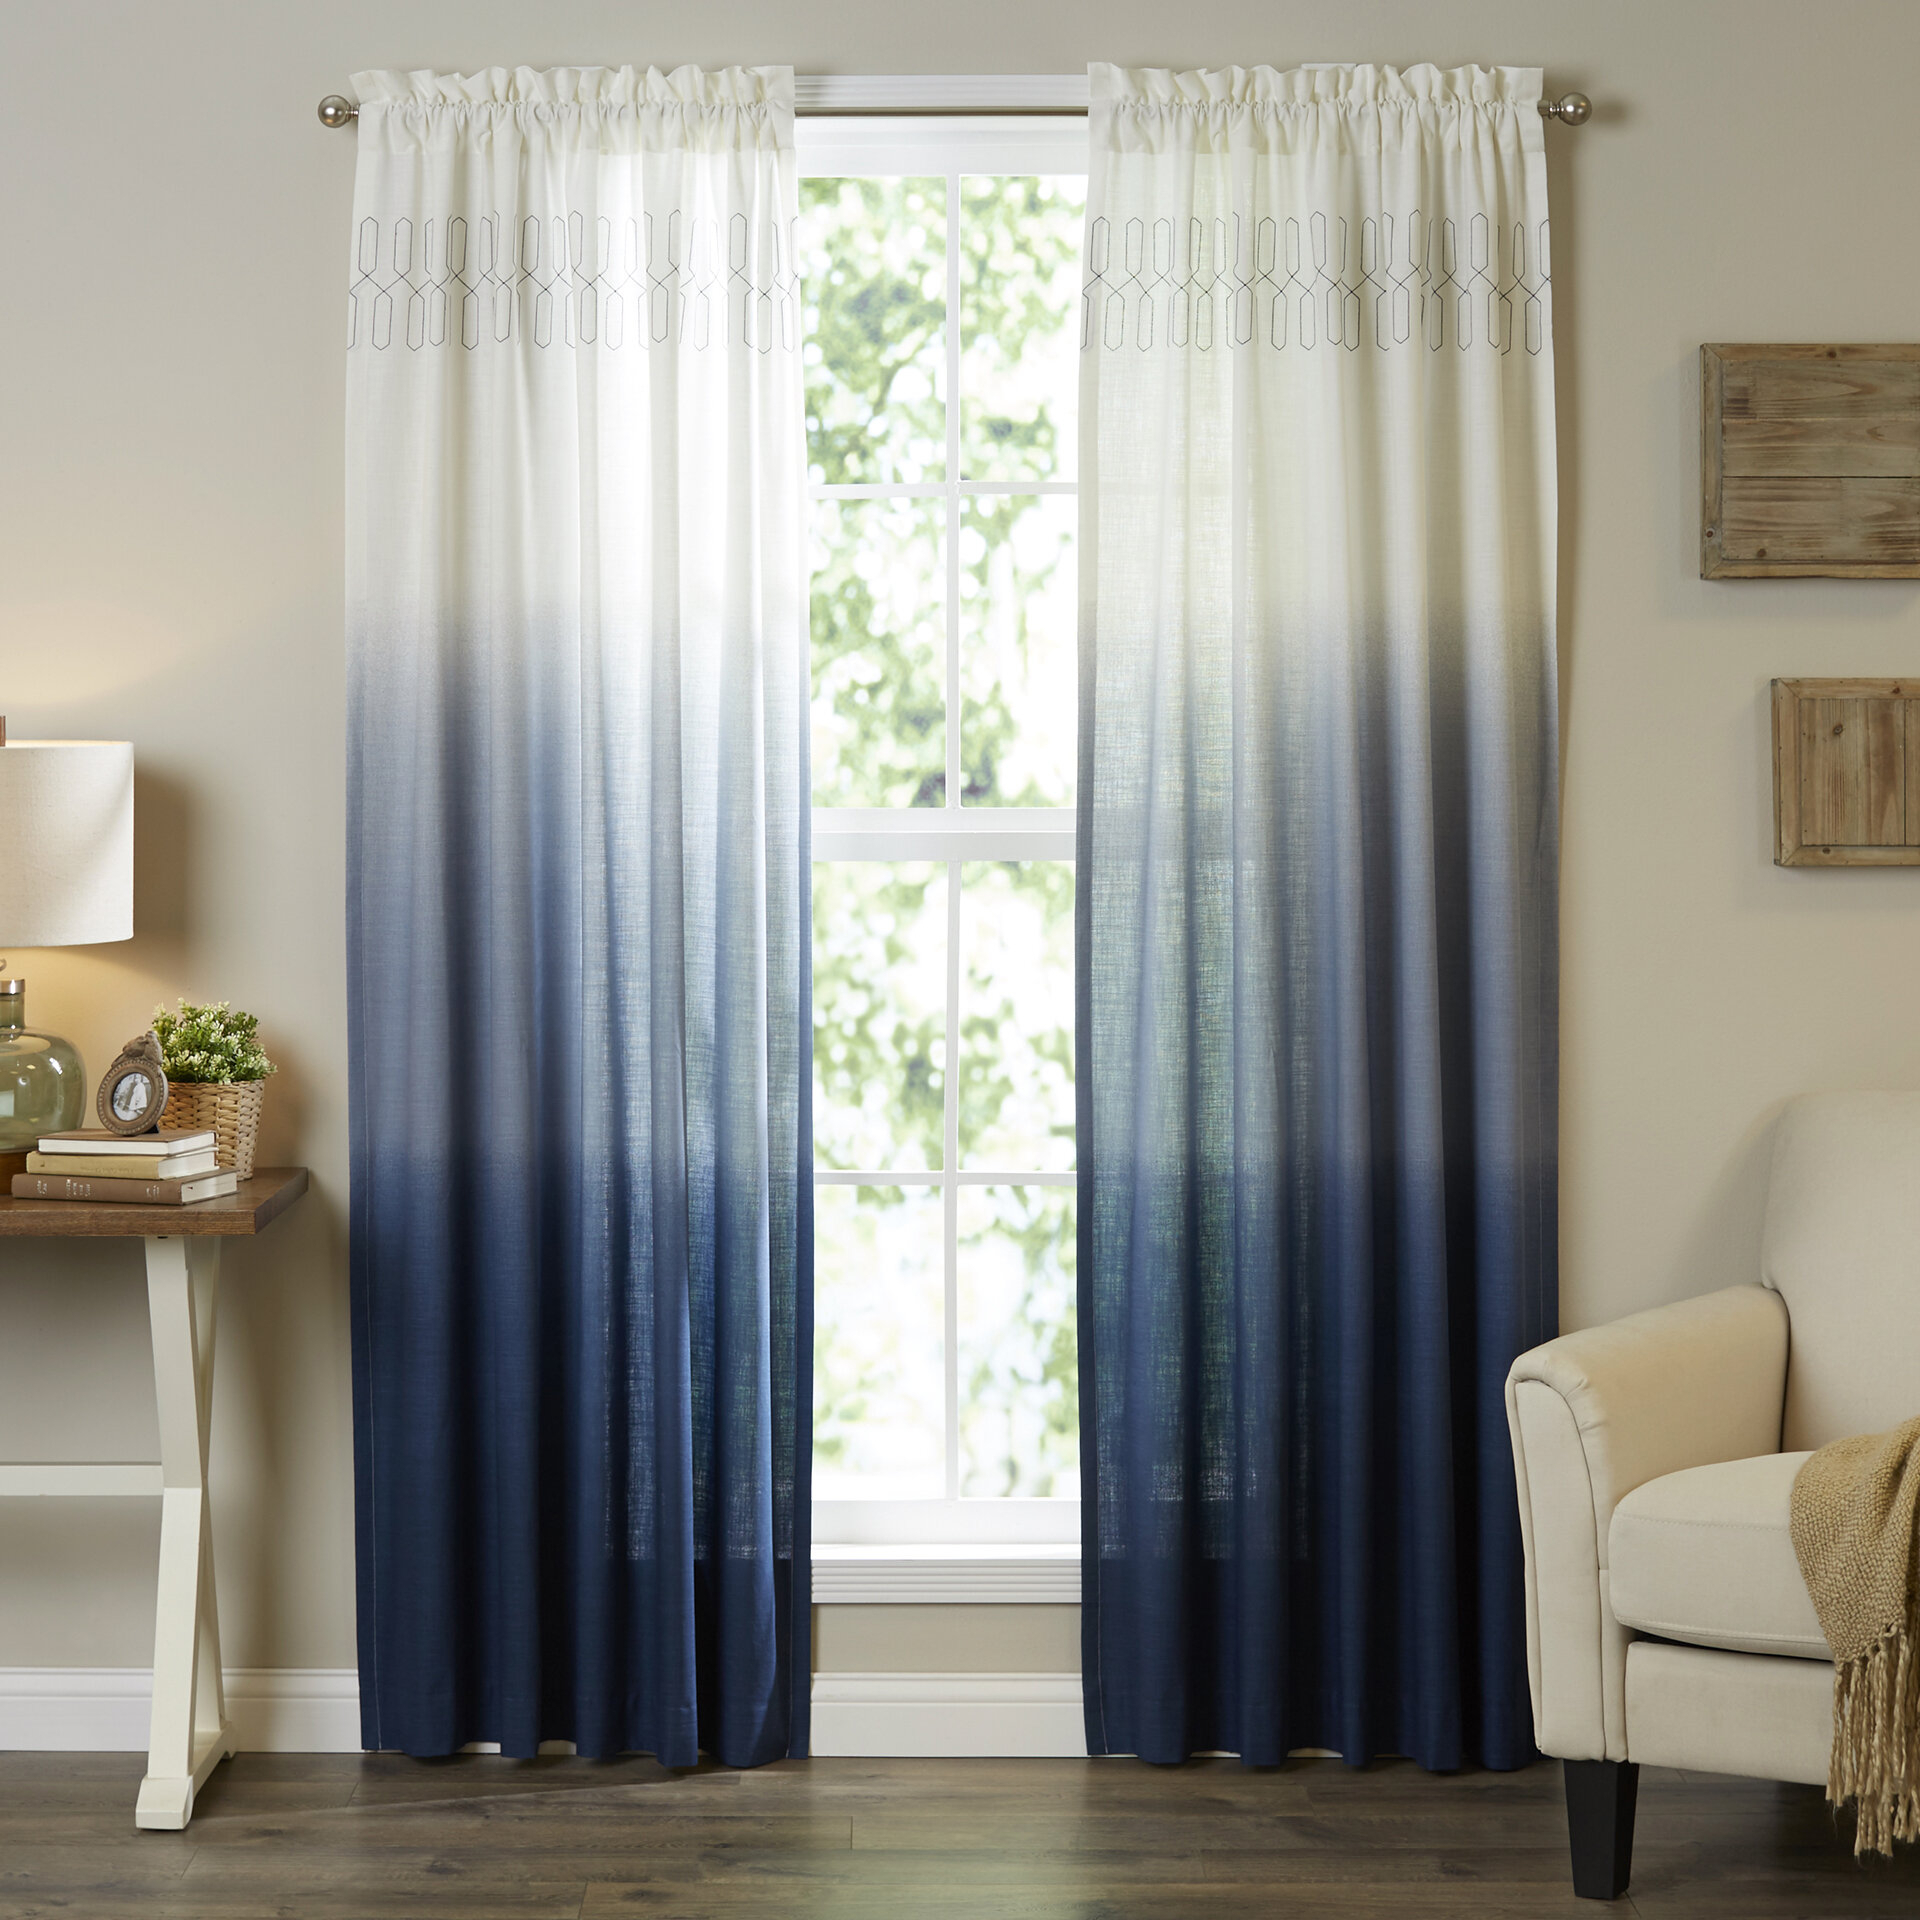 Higbee Solid Sheer Rod Pocket Single Curtain Panel With Regard To Ombre Embroidery Curtain Panels (View 6 of 20)